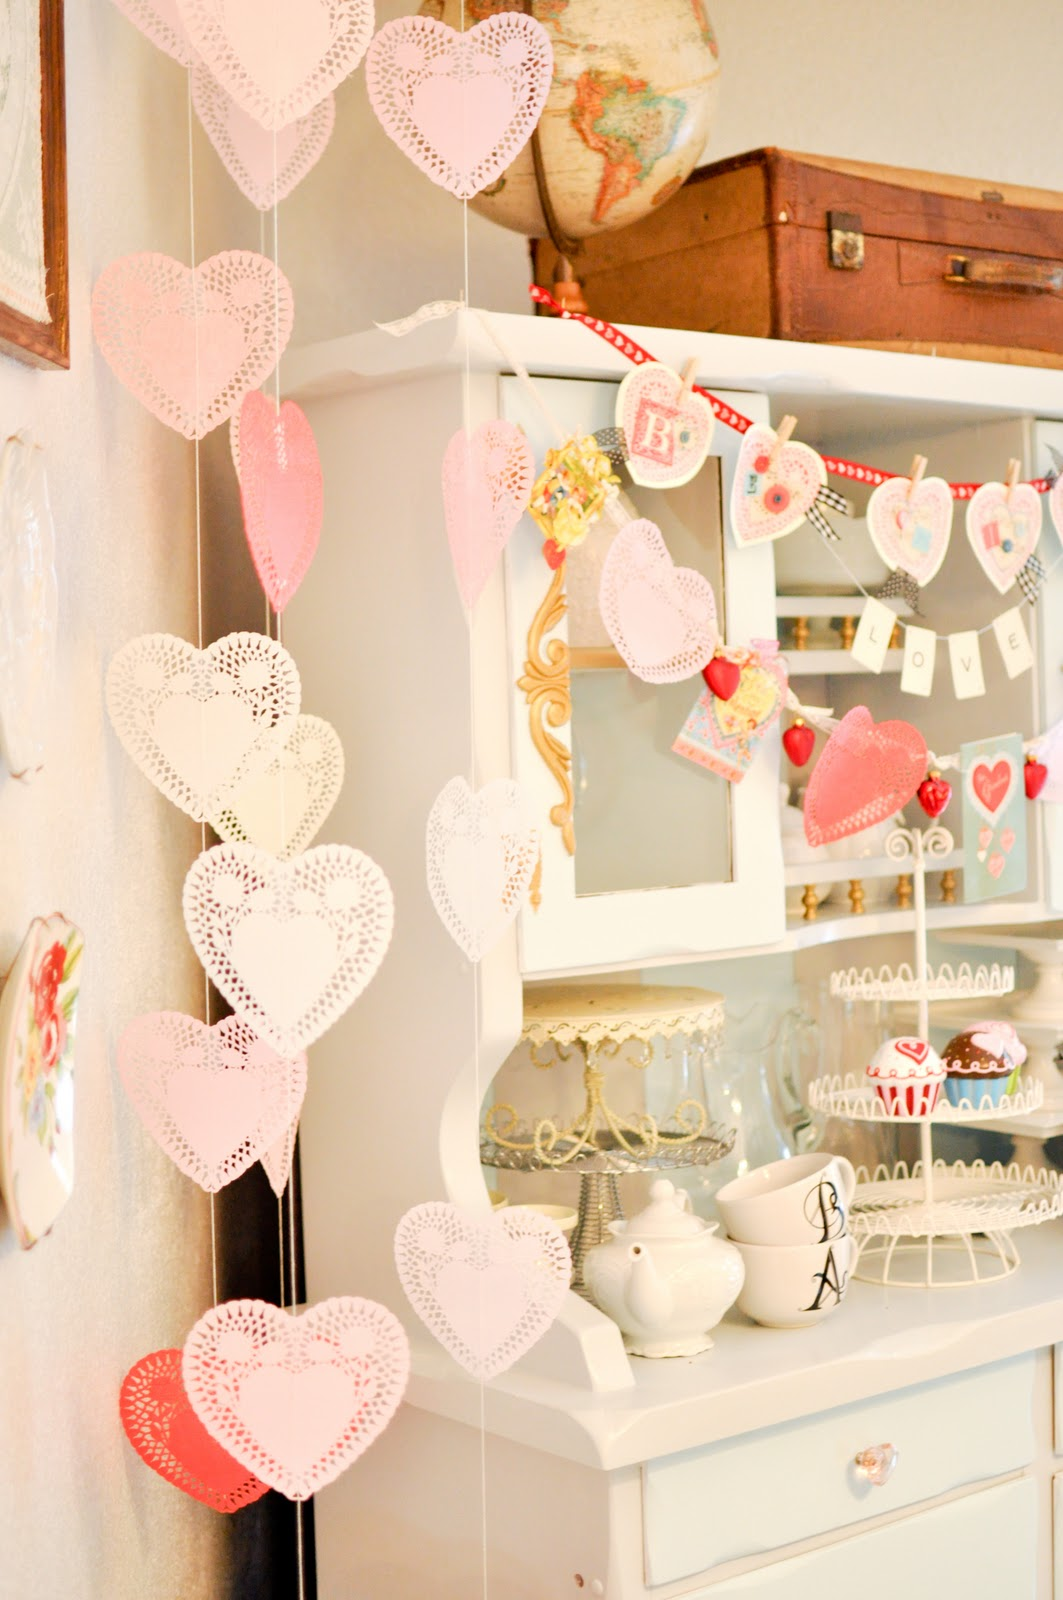 20 valentine 39 s day decorations ideas for your home for Heart decorations for the home